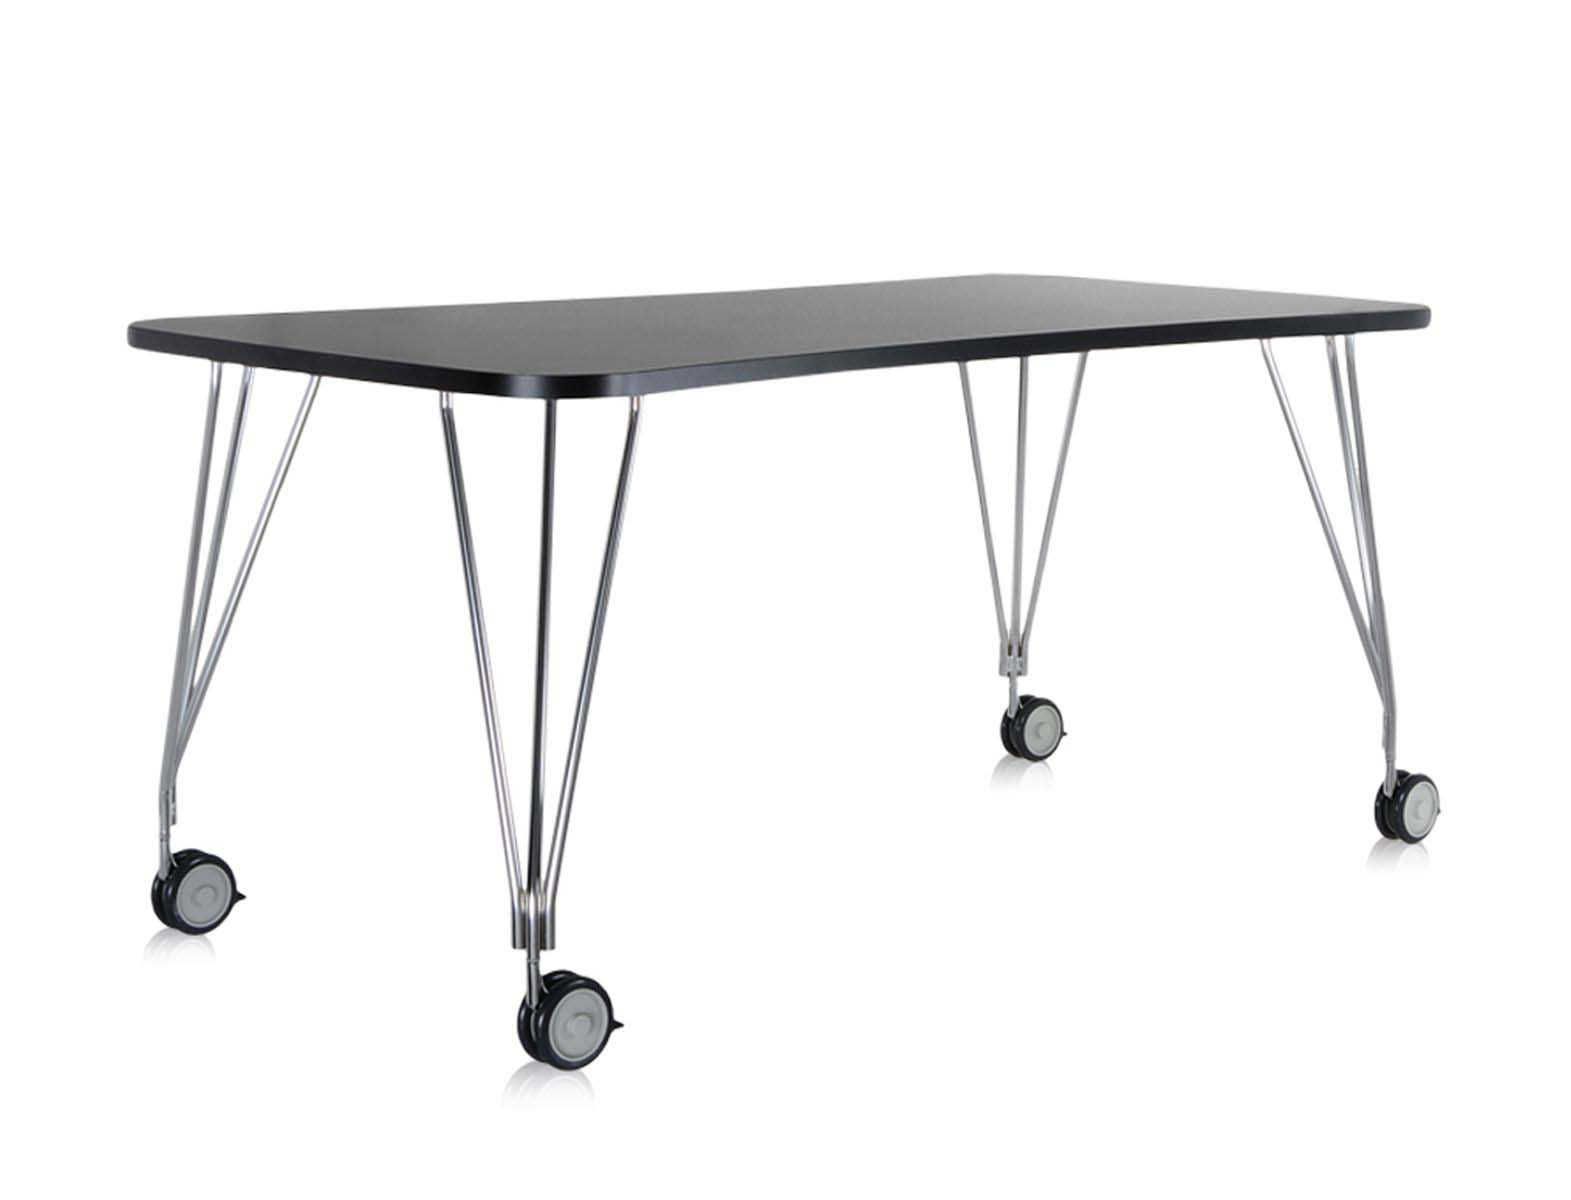 Dining Table With Metal Legs Max